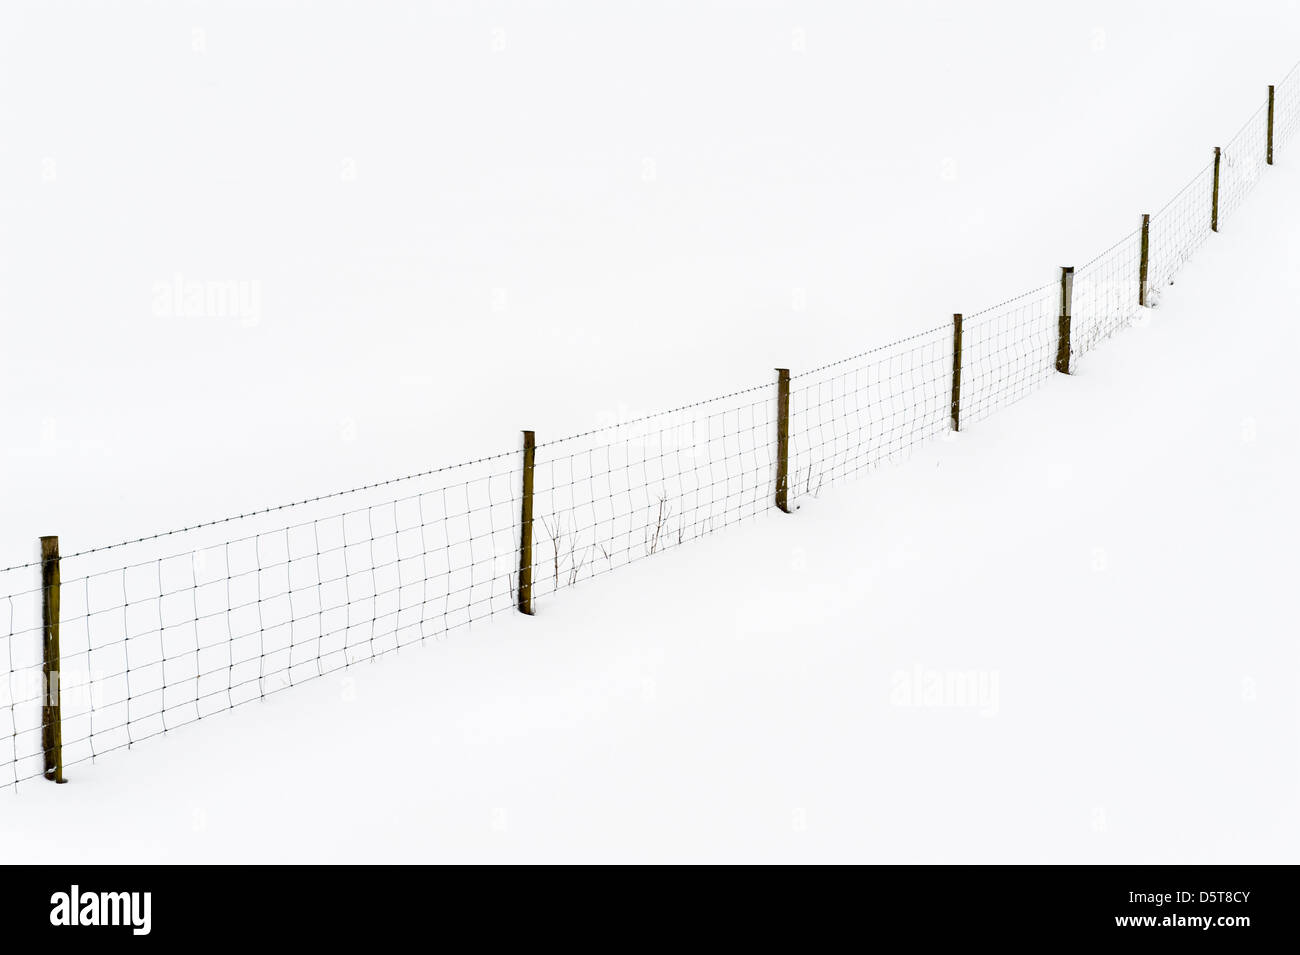 Snow-covered fields and fences make abstract patterns during the UK's cold spring of 2013 - Stock Image